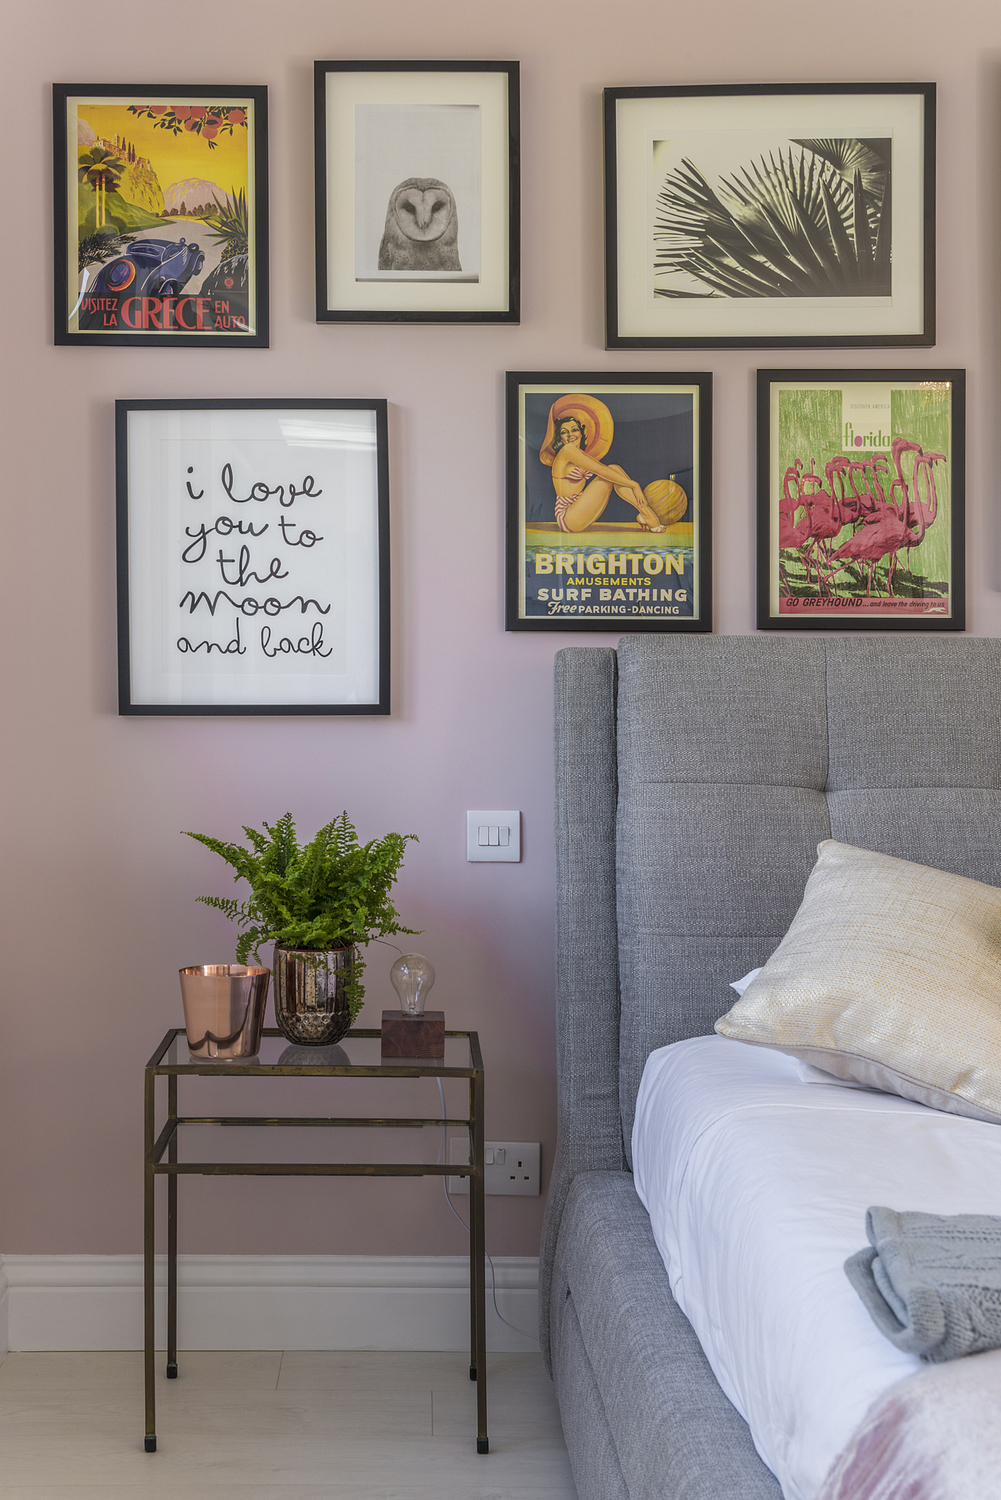 Bedside detail with pictures, London